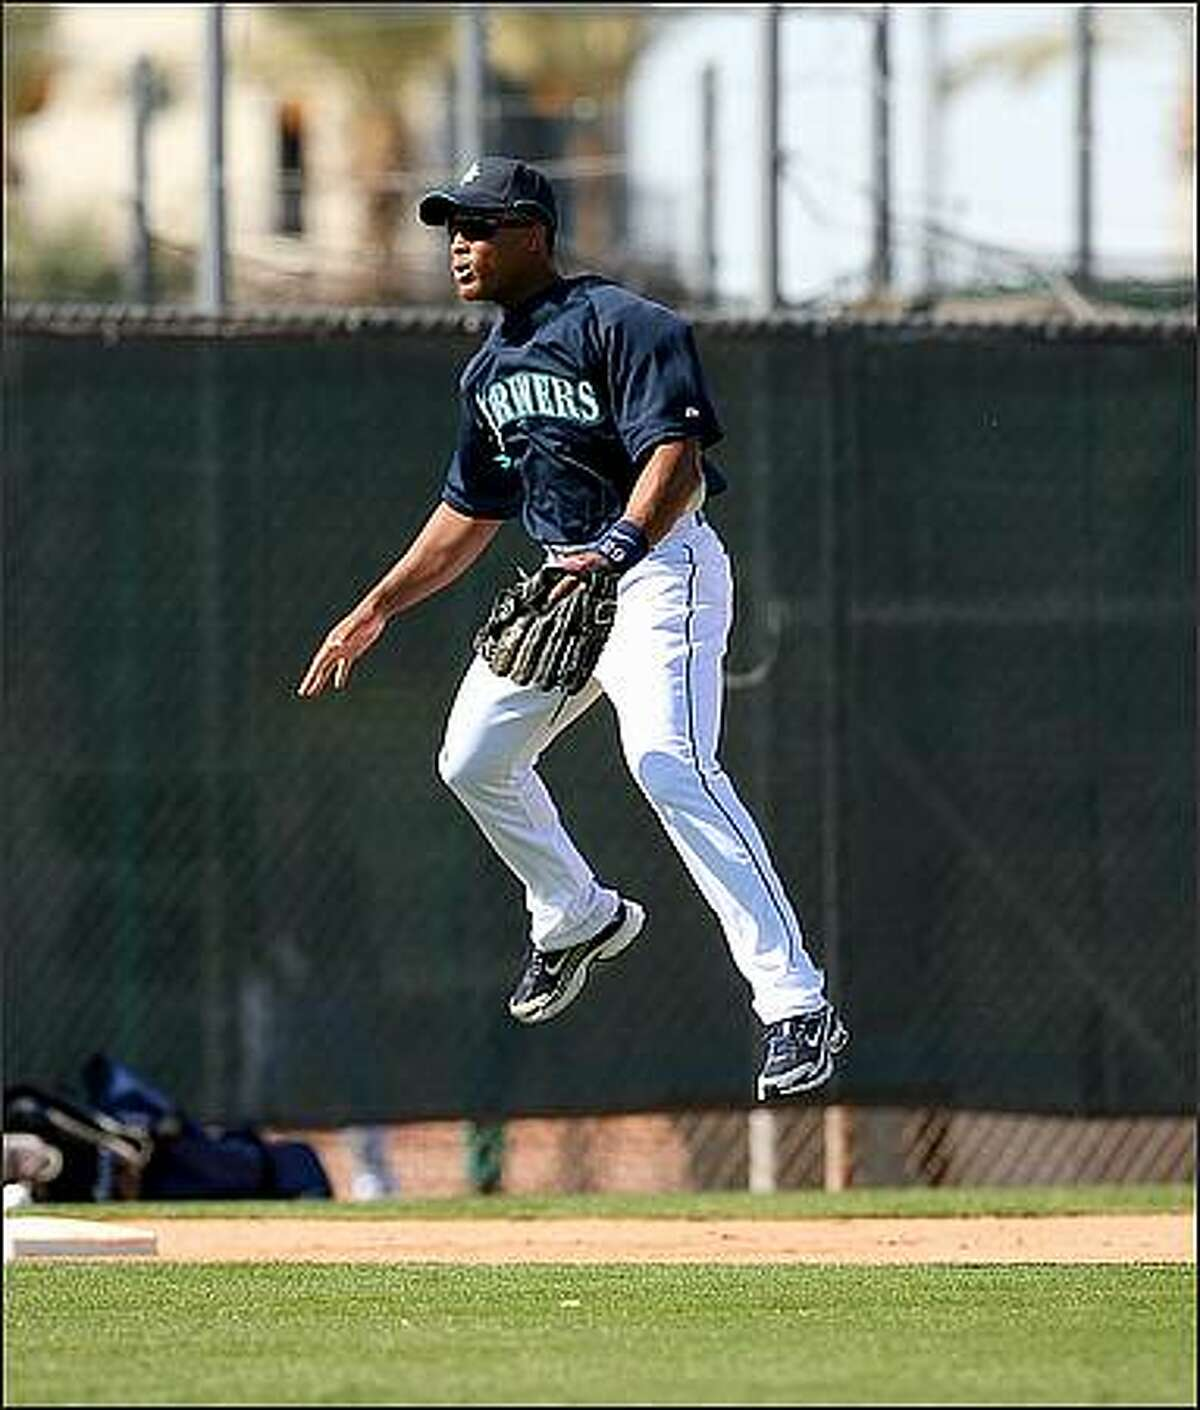 Third baseman Adrian Beltre gets some air as an unseen ground ball gets his attention during batting practice.